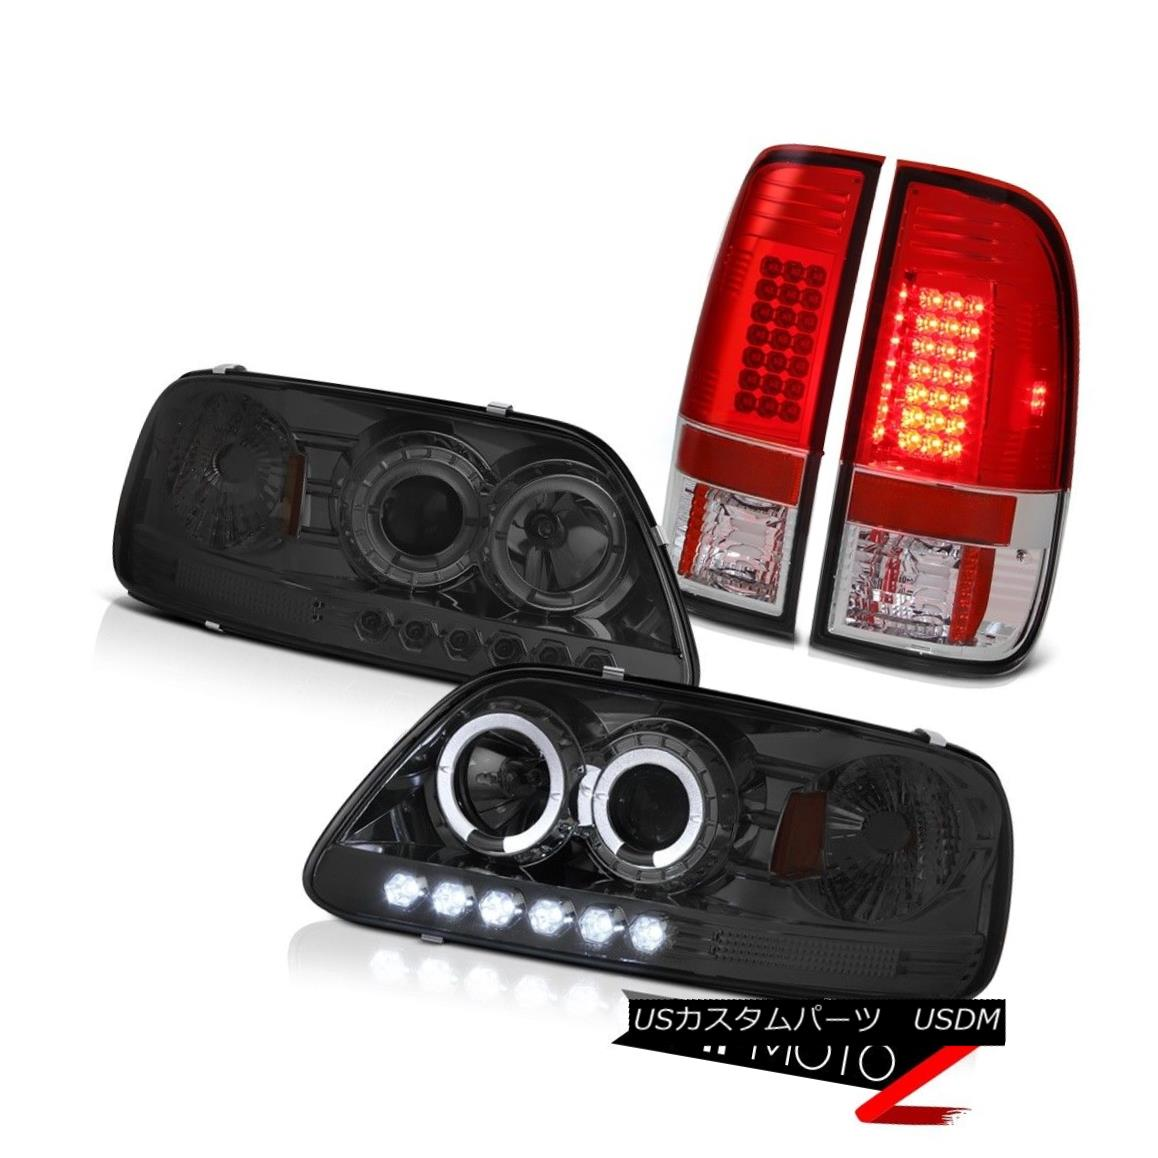 テールライト Ford F150 97-03 Smoke LED Halo Headlights Bright L.E.D Rear Signal Tail Lights Ford F150 97-03 Smoke LED HaloヘッドライトBright L.E.Dリアシグナルテールライト